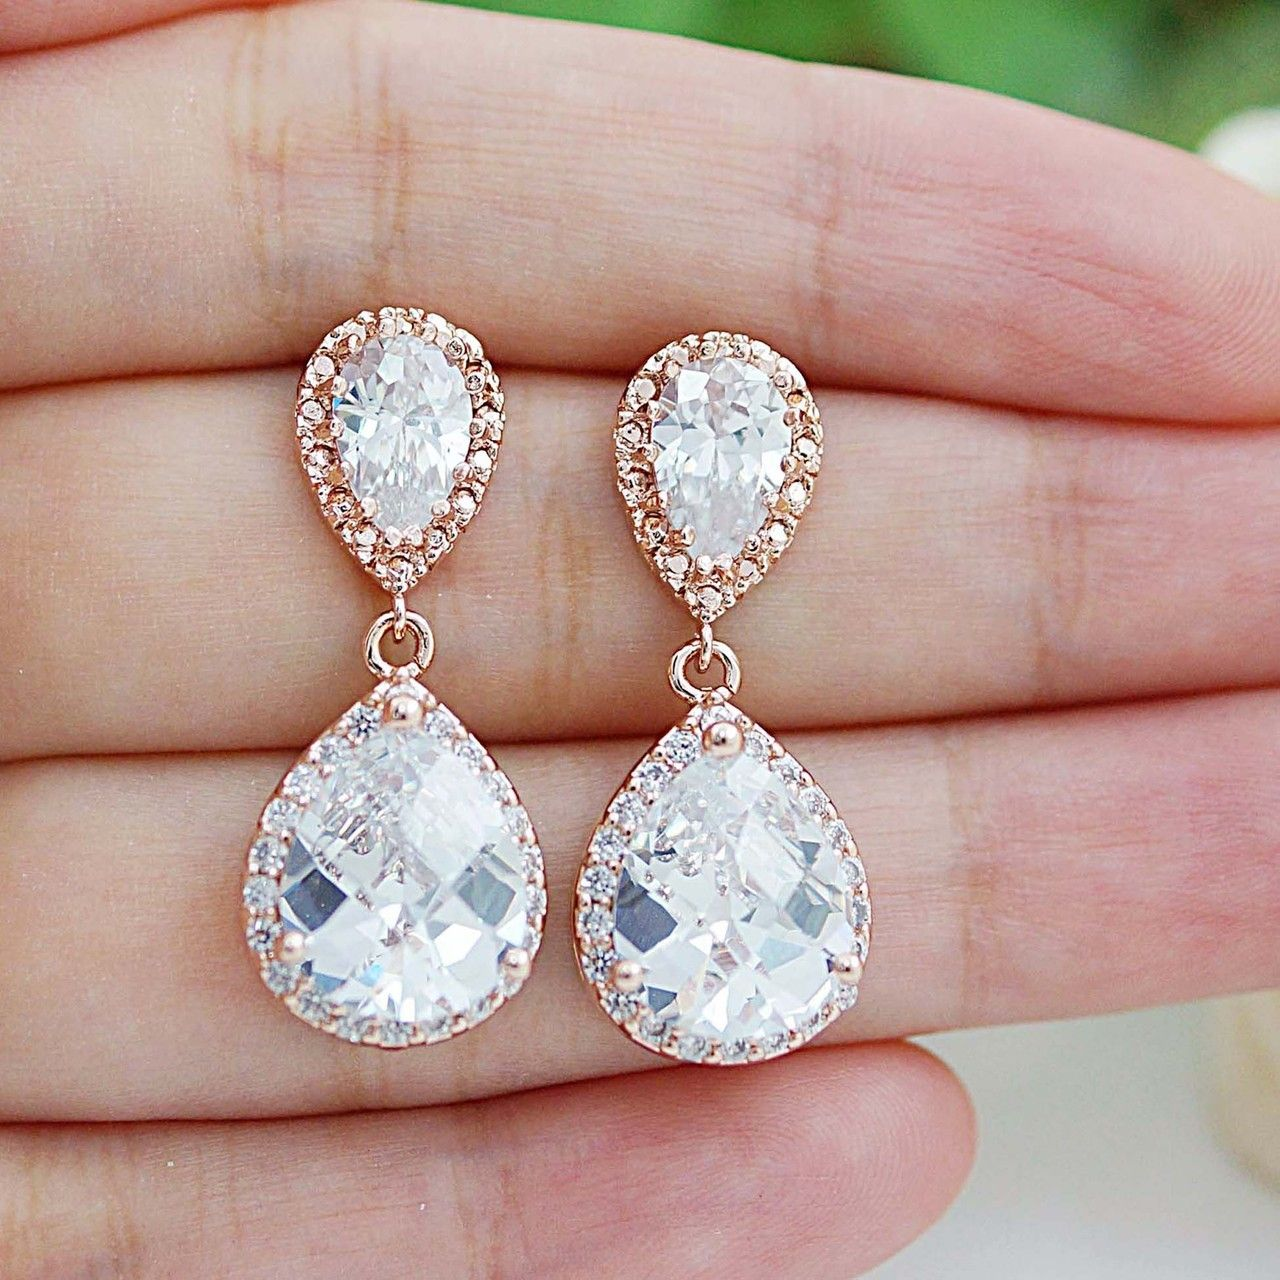 Lux Rose Gold Clear White Cubic Zirconia Crystal Tear Drop Wedding Earrings Joias Do Casamento Acessorios Brincos